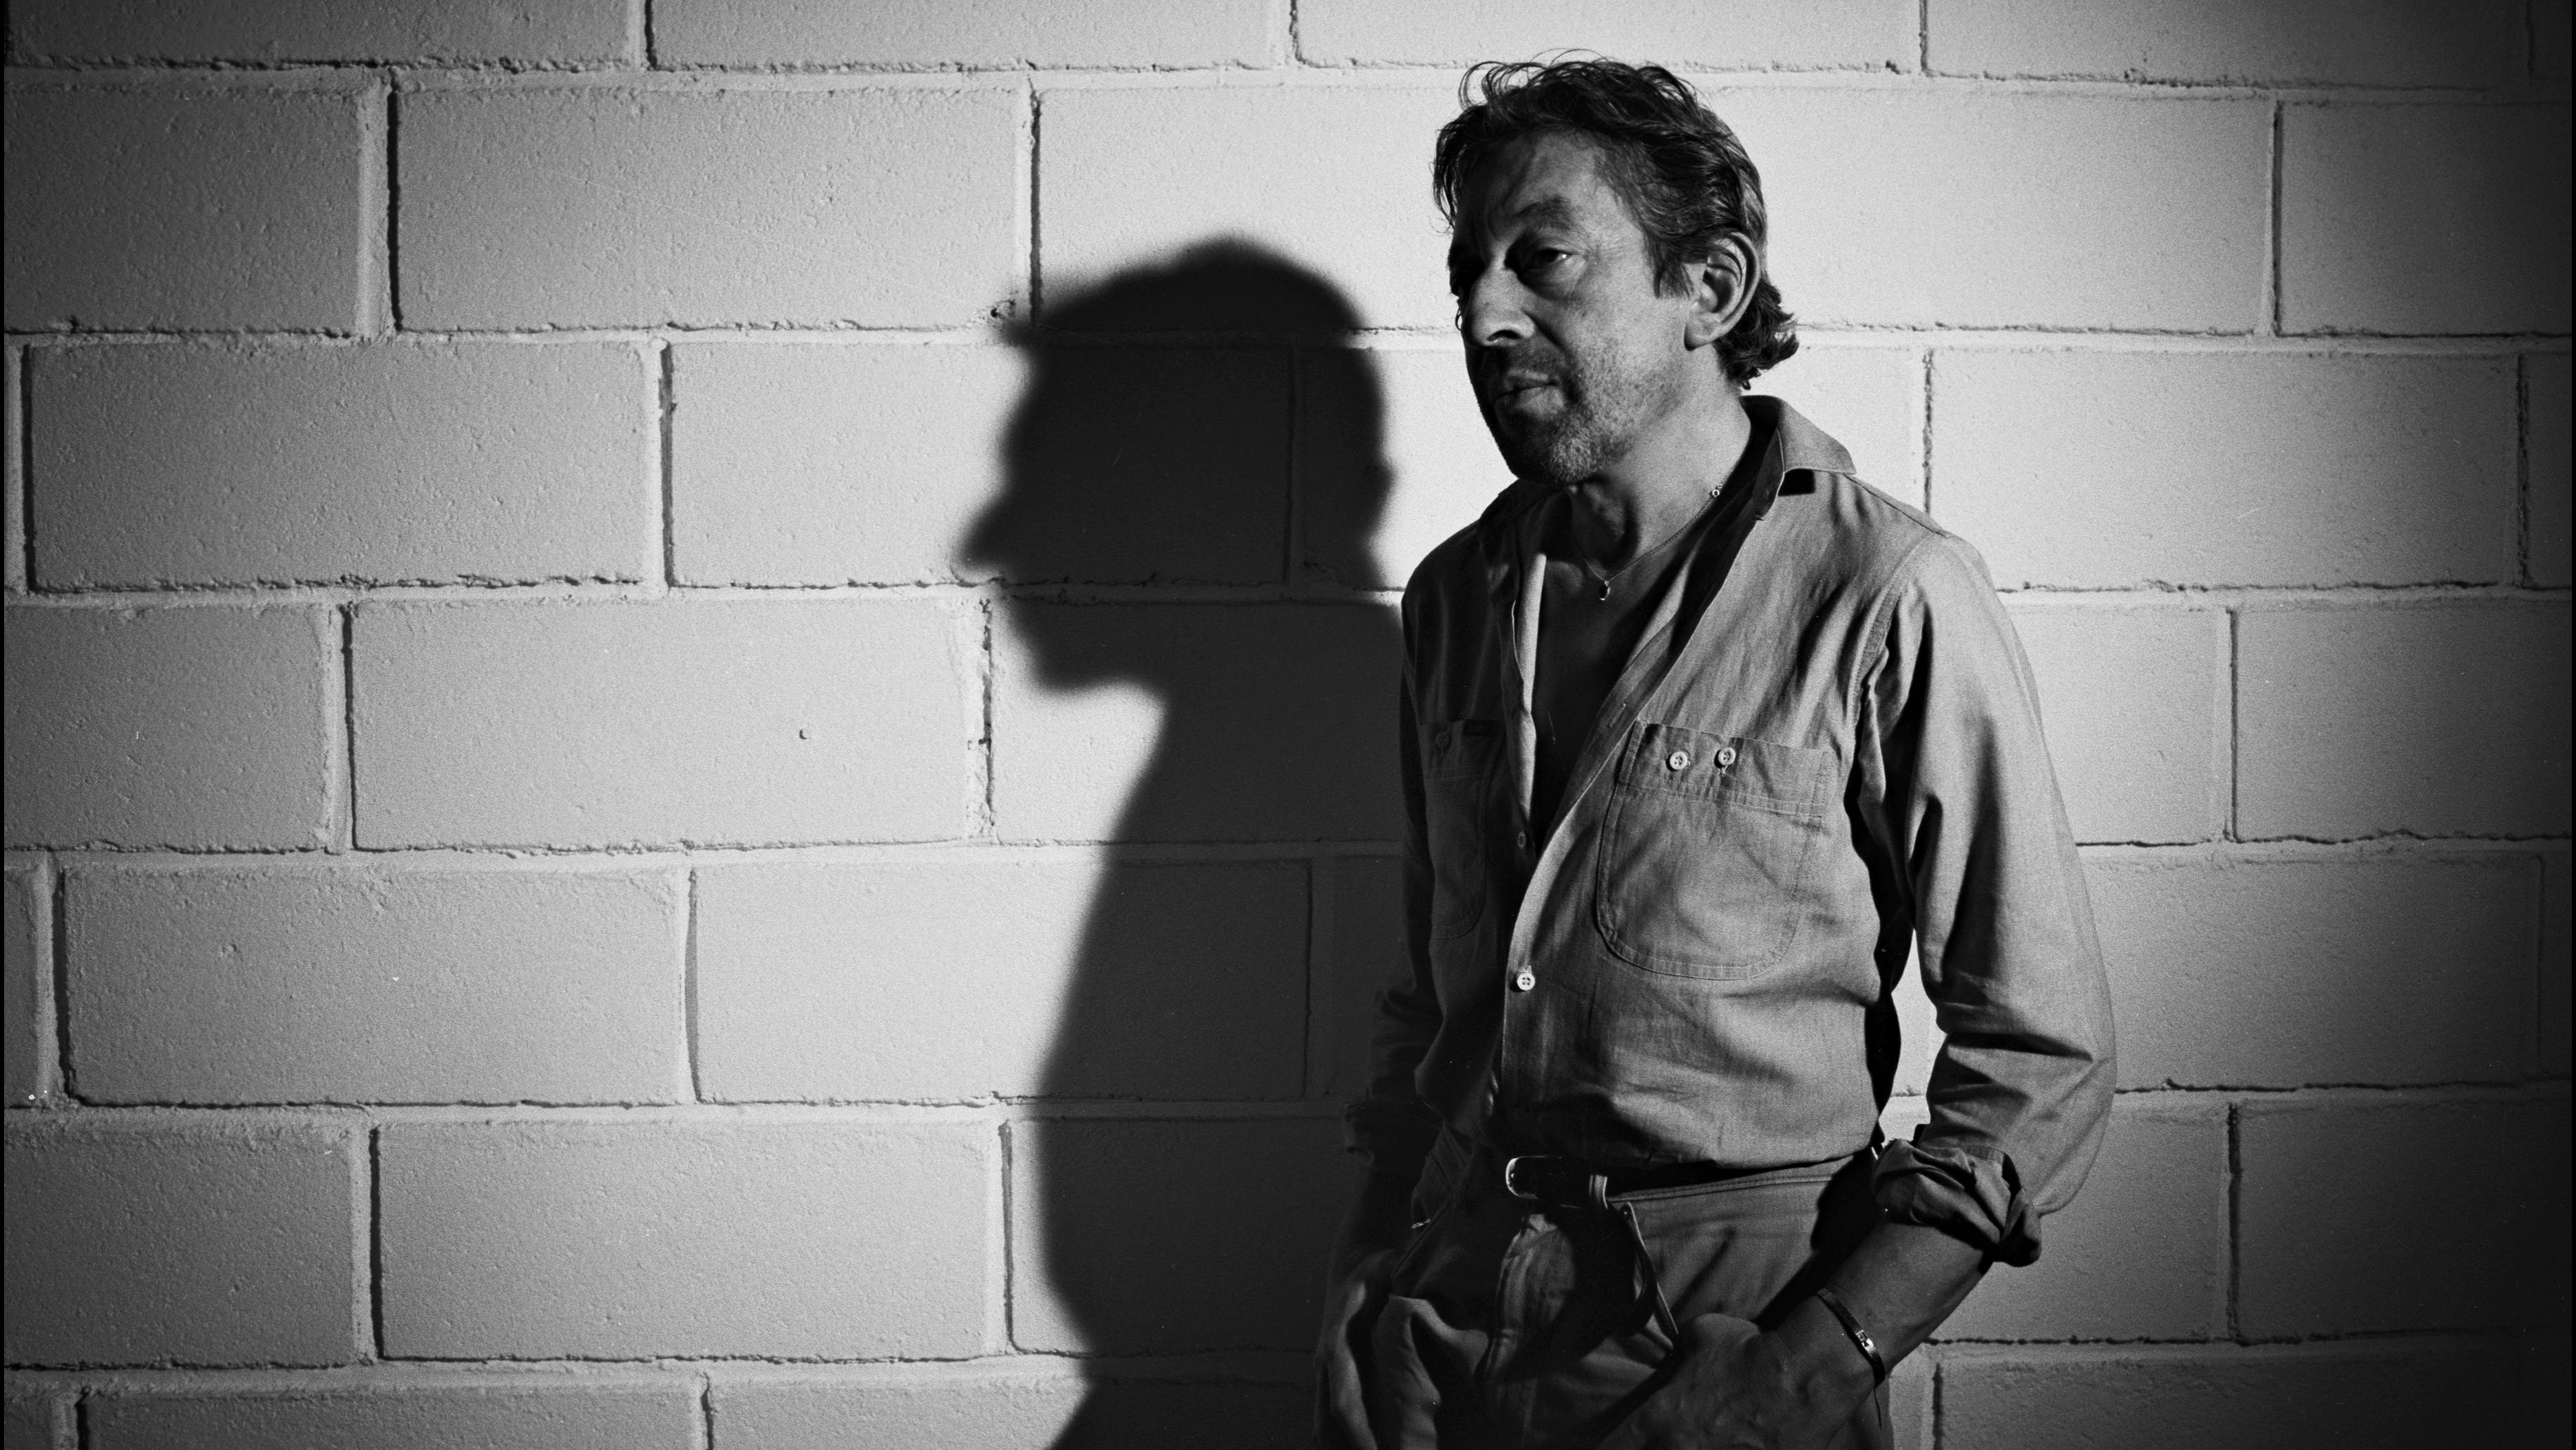 Serge Gainsbourg in France on July 10th, 1985.